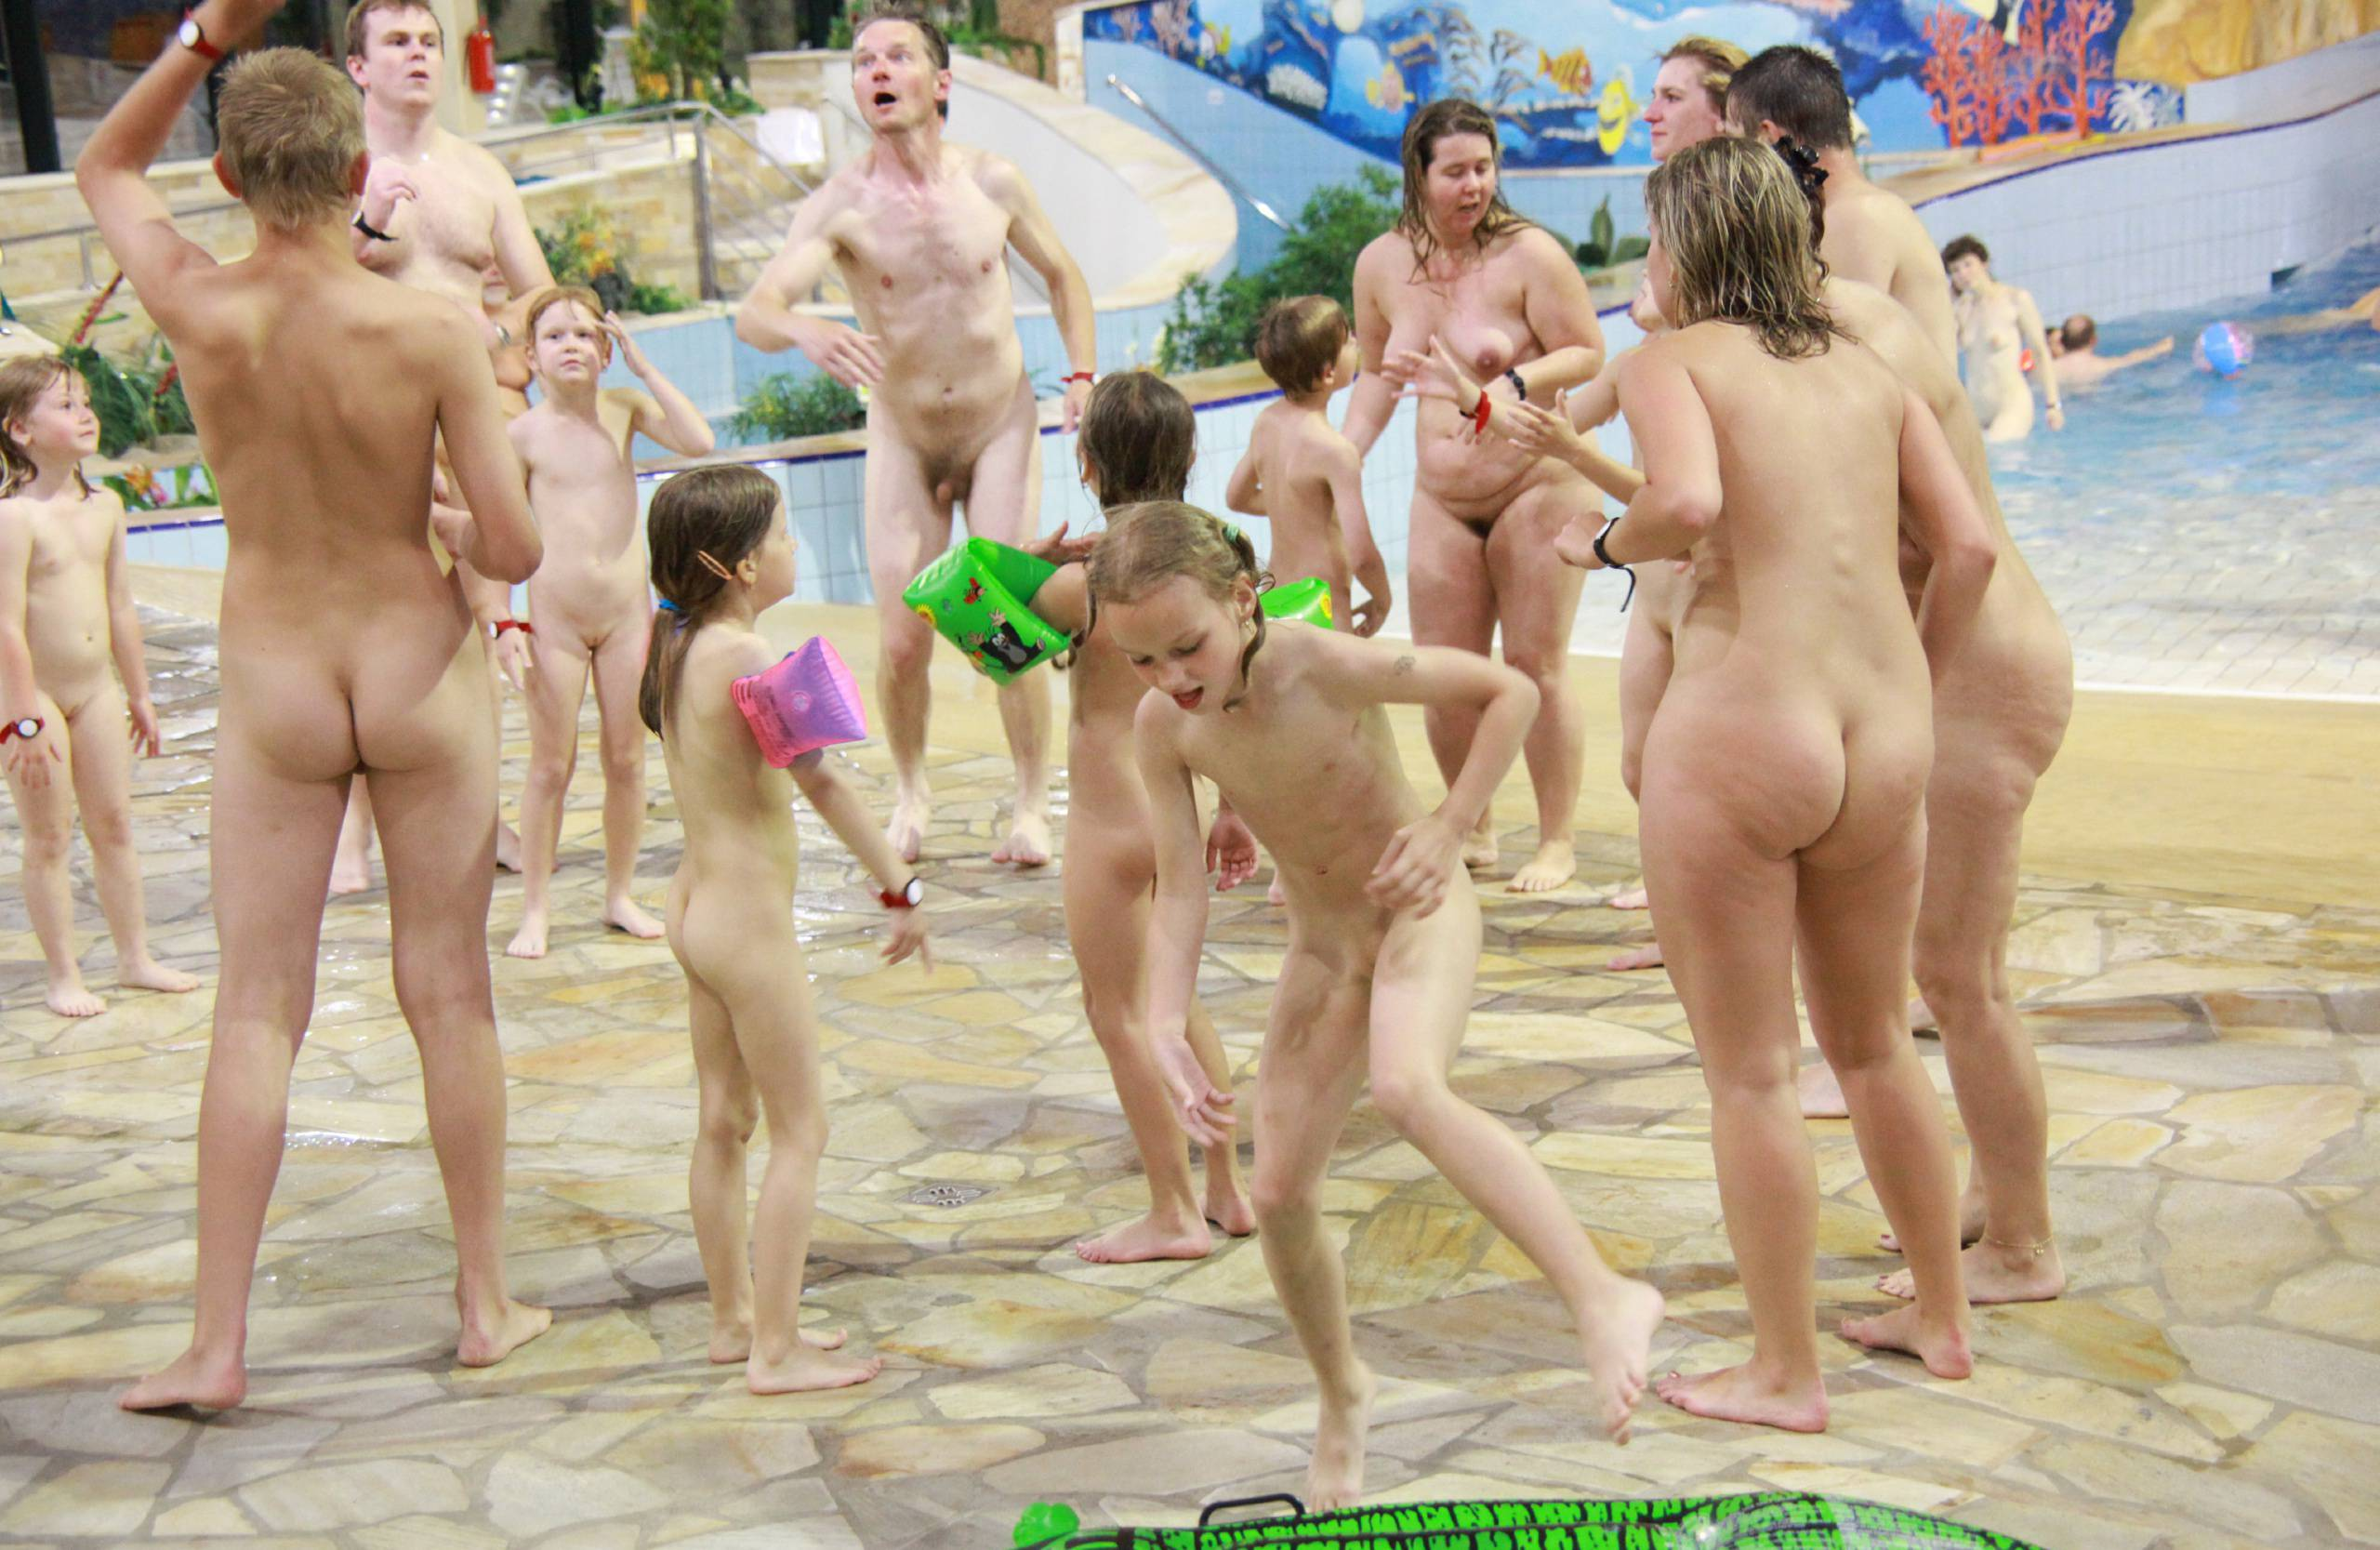 Naturist Party Games - 2